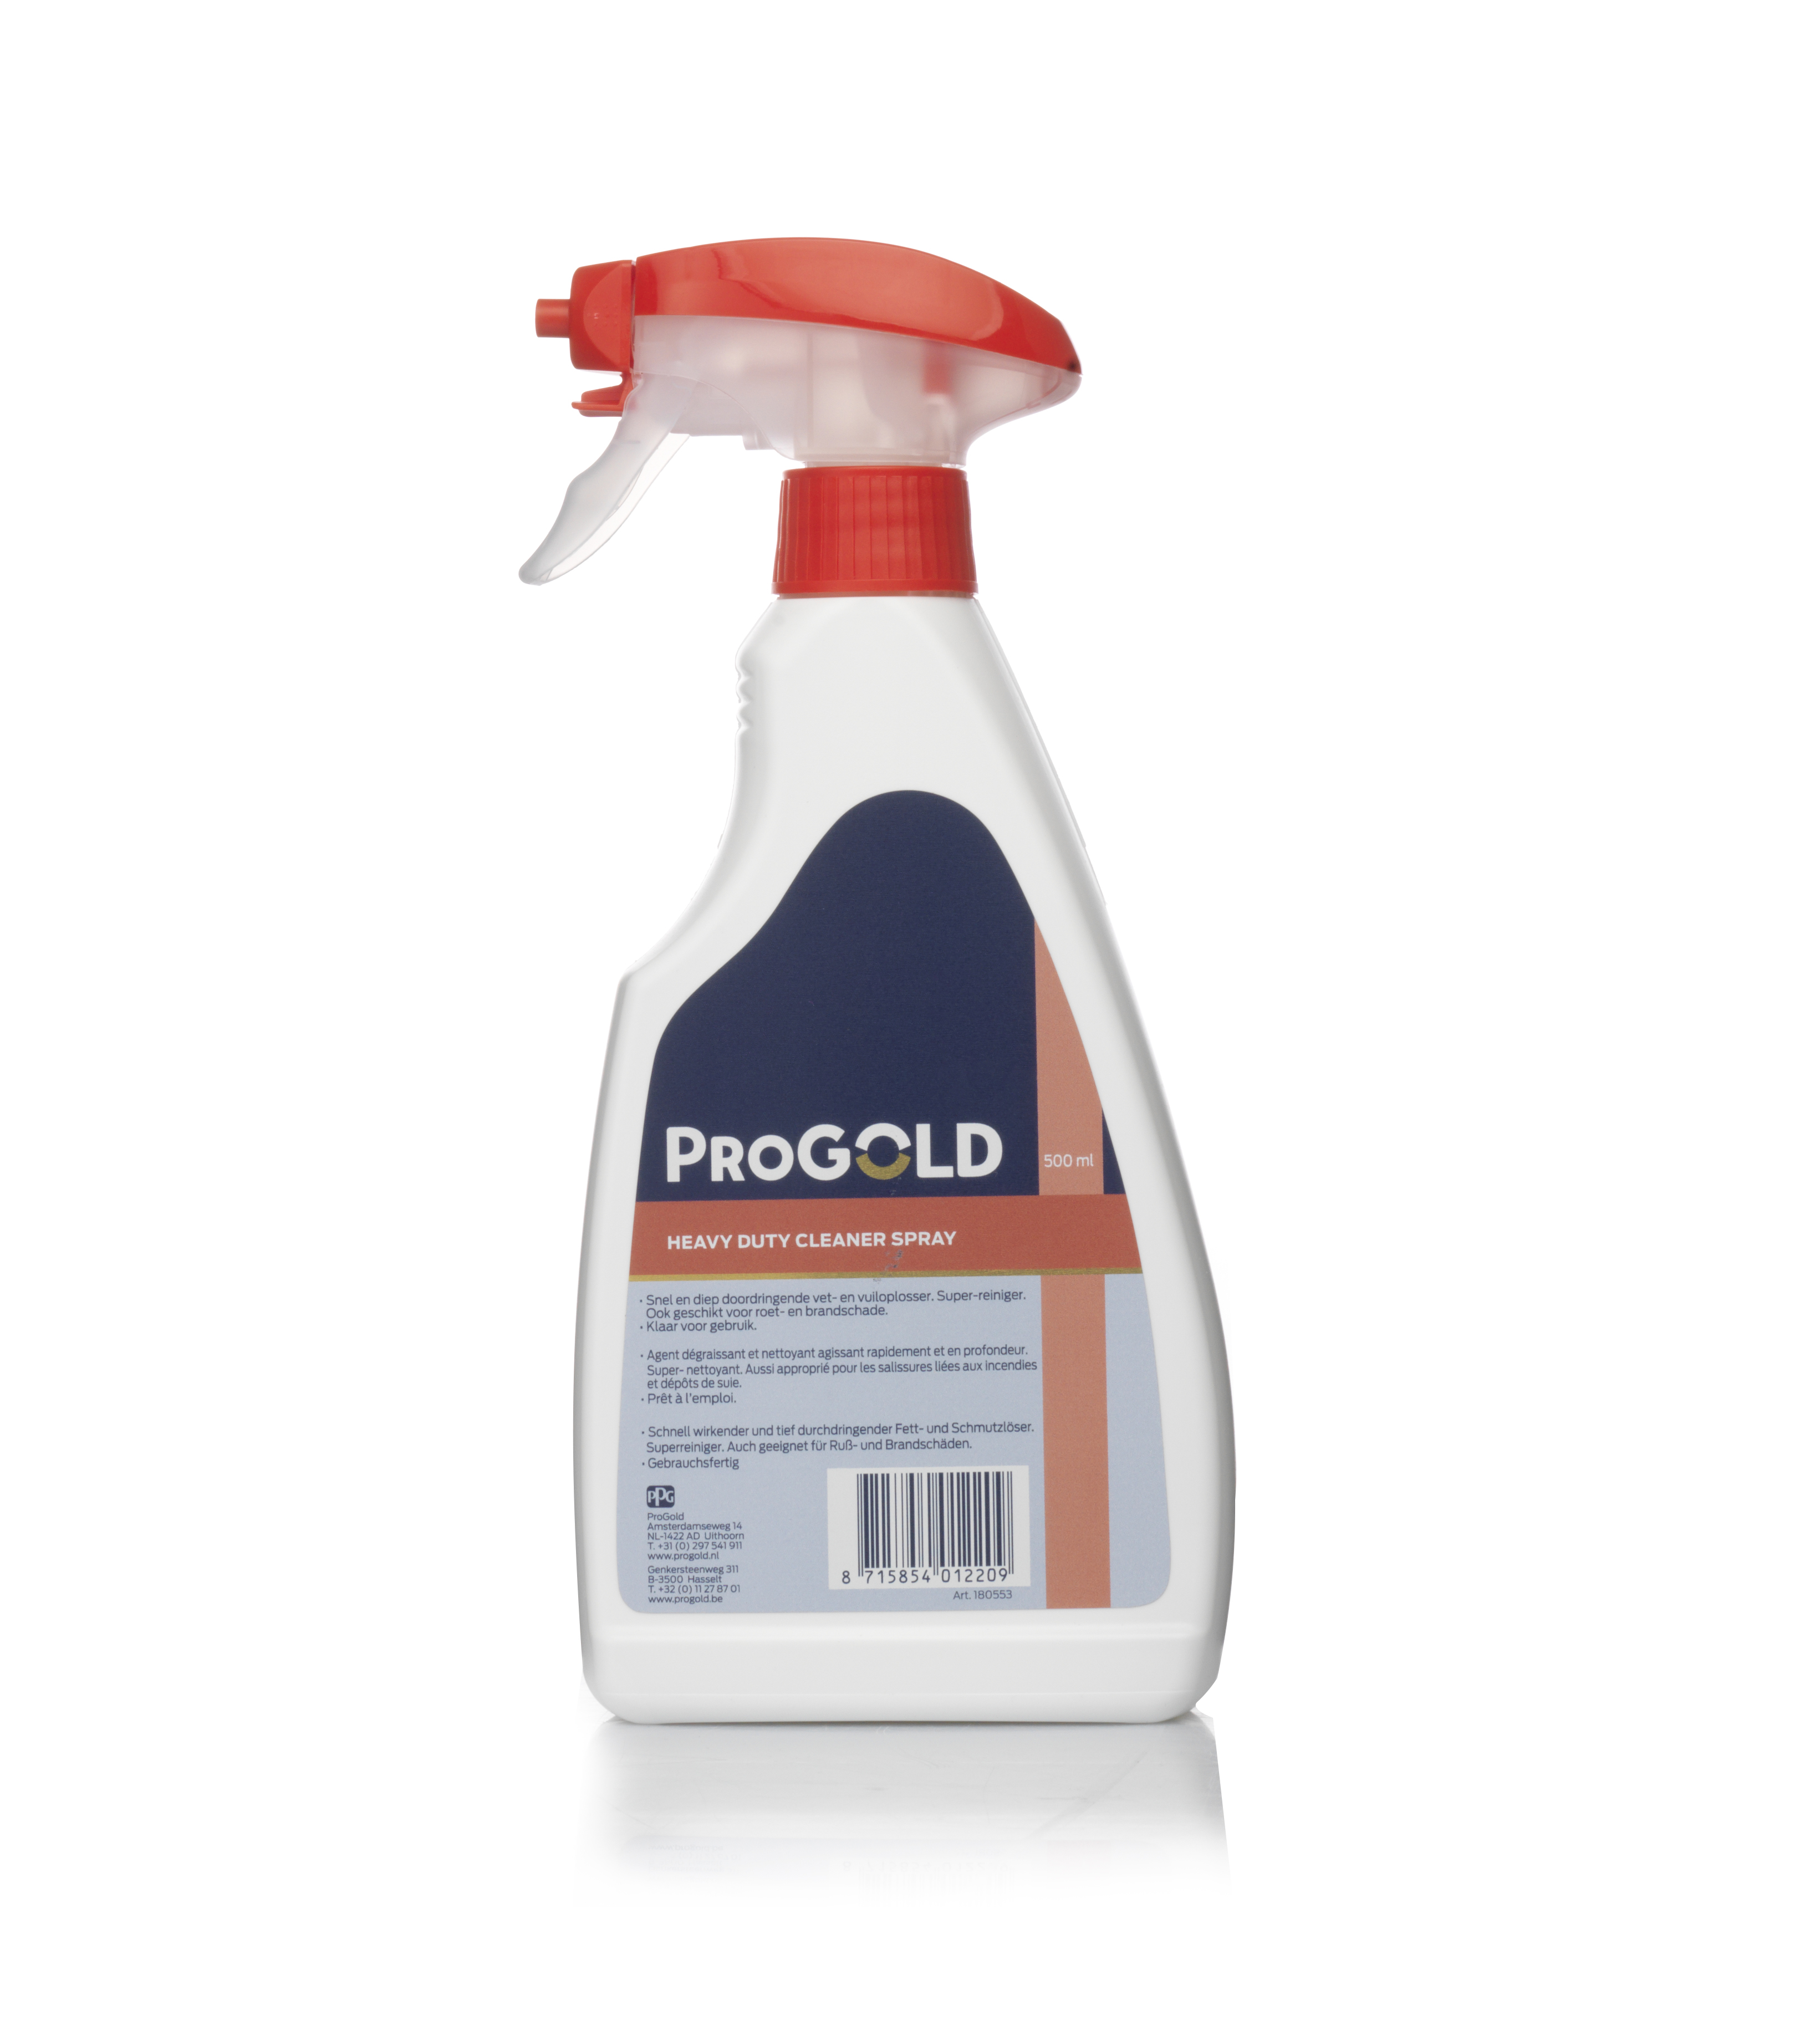 ProGold Heavy Duty Cleaner Spray